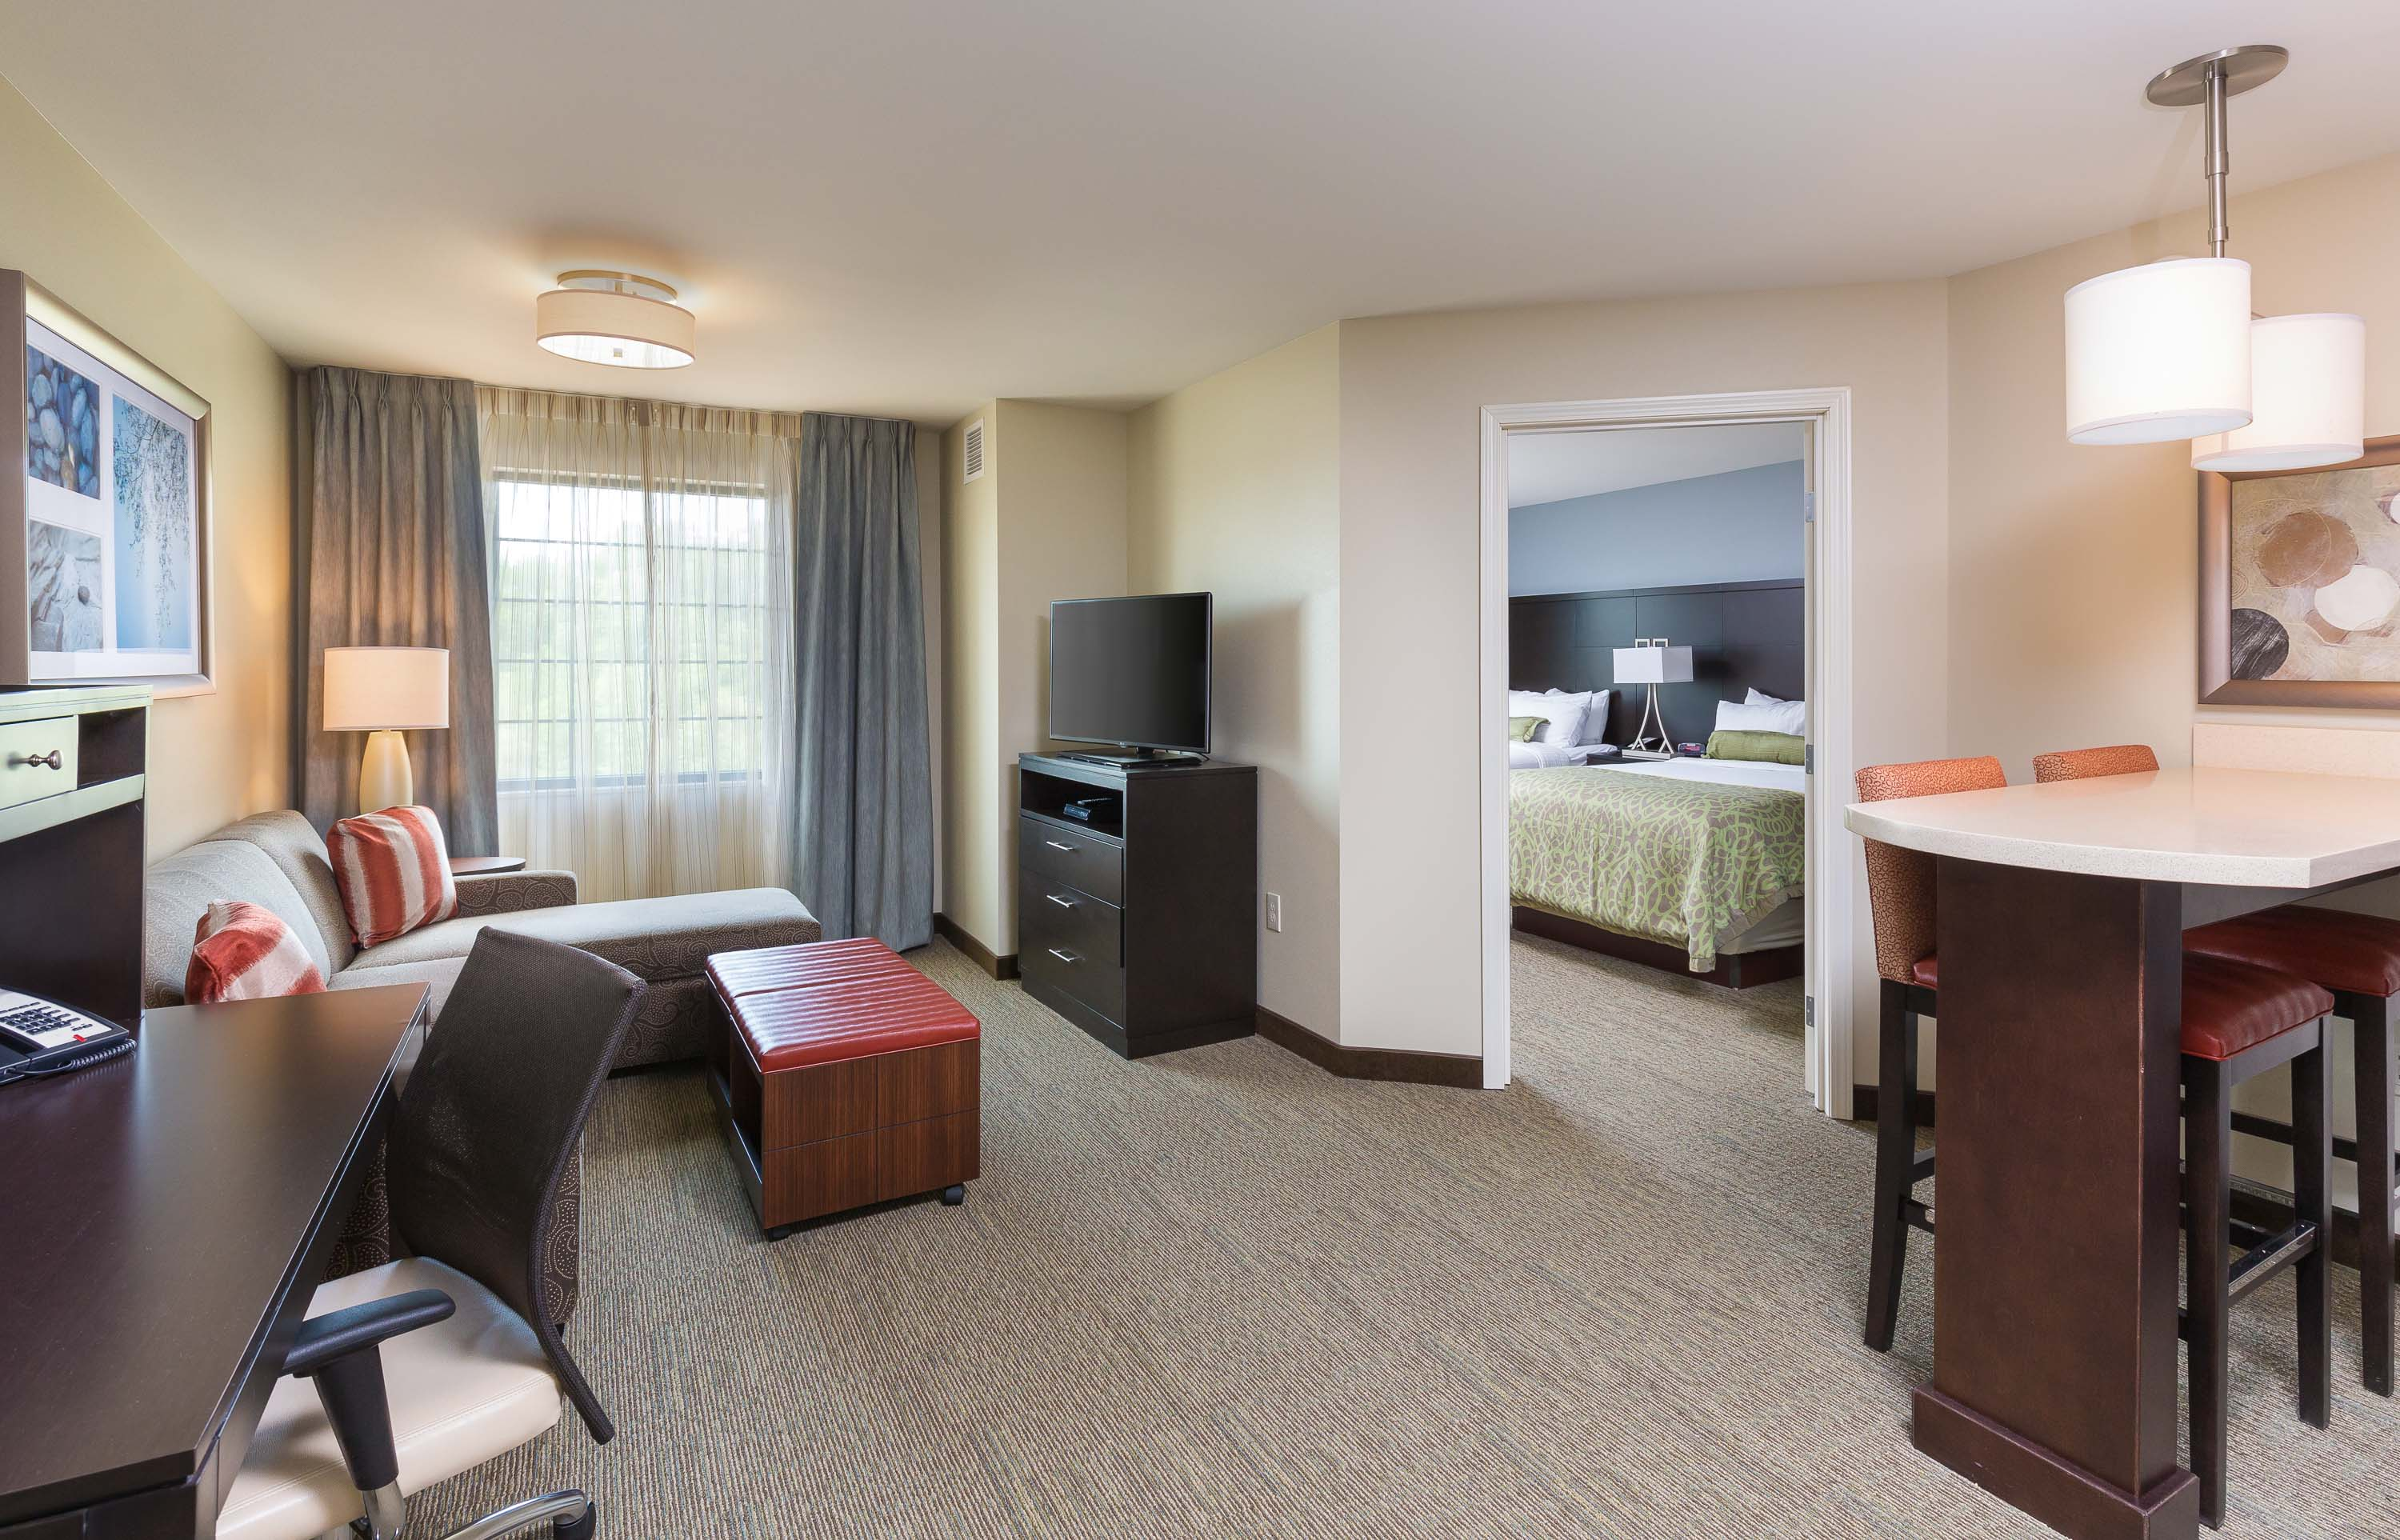 20150610_canton_staybridge_1room_001